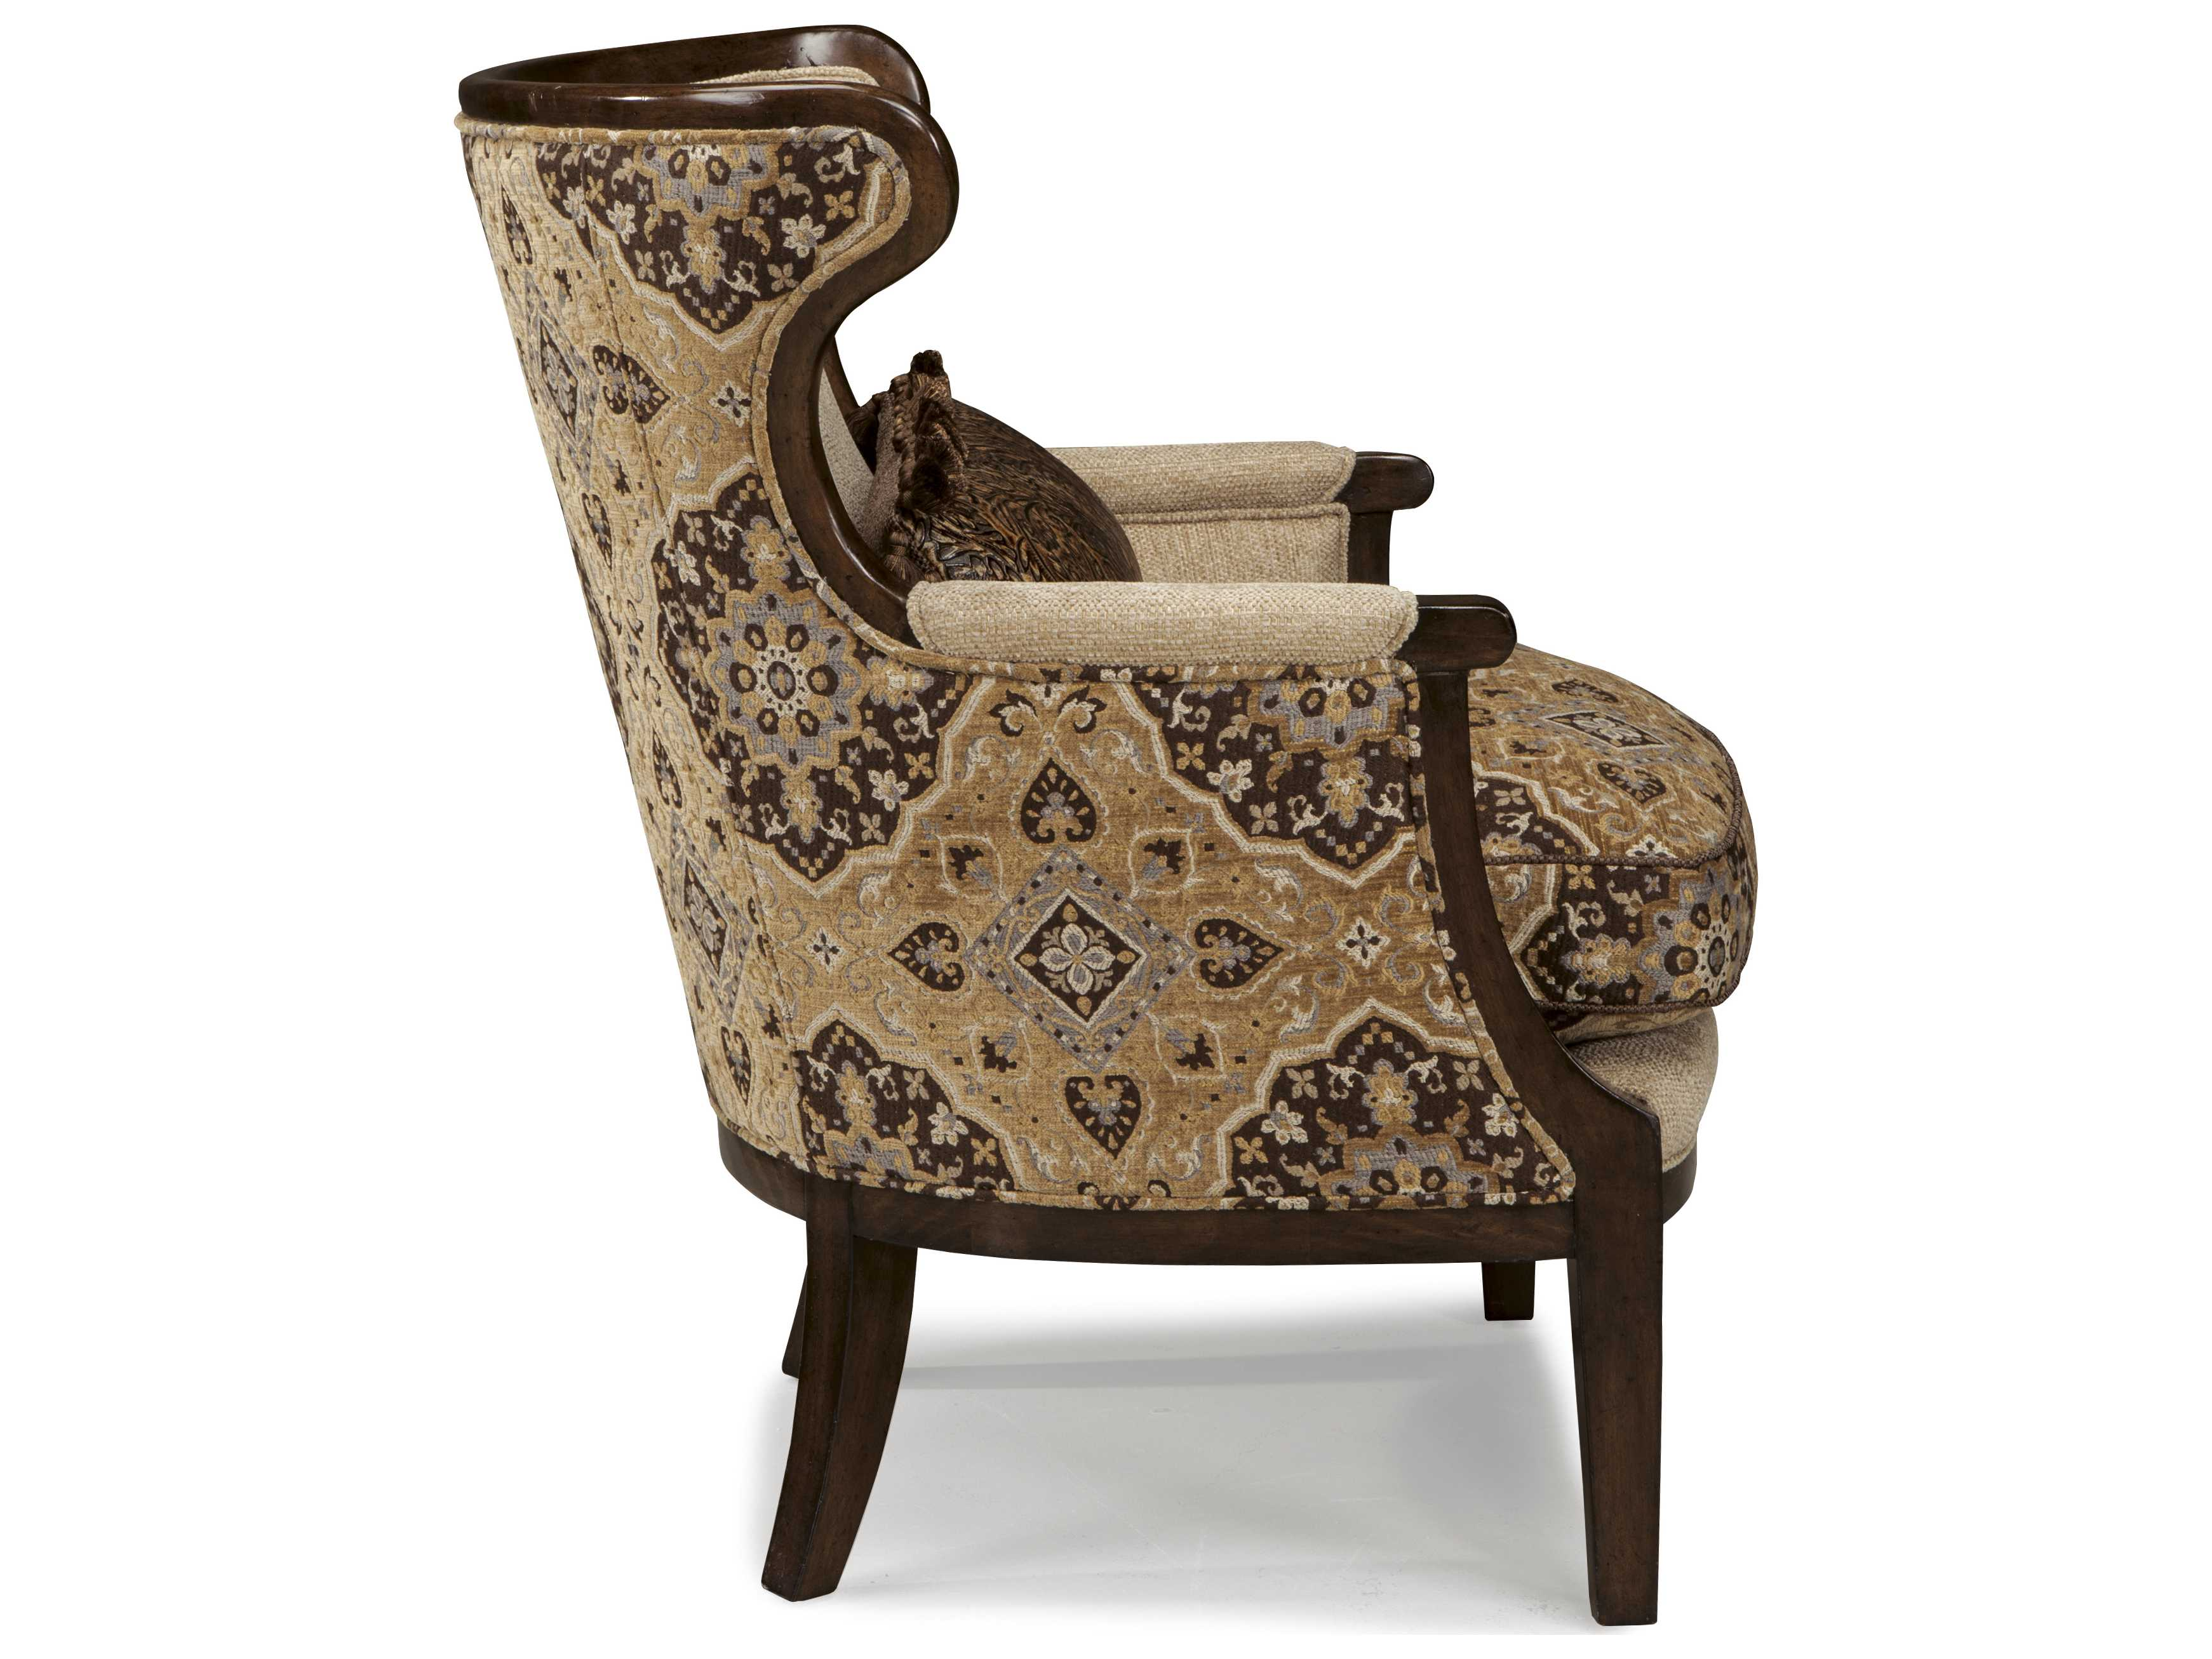 rustic accent chairs x rocker pedestal video gaming chair a r t furniture ava walnut and melange beige